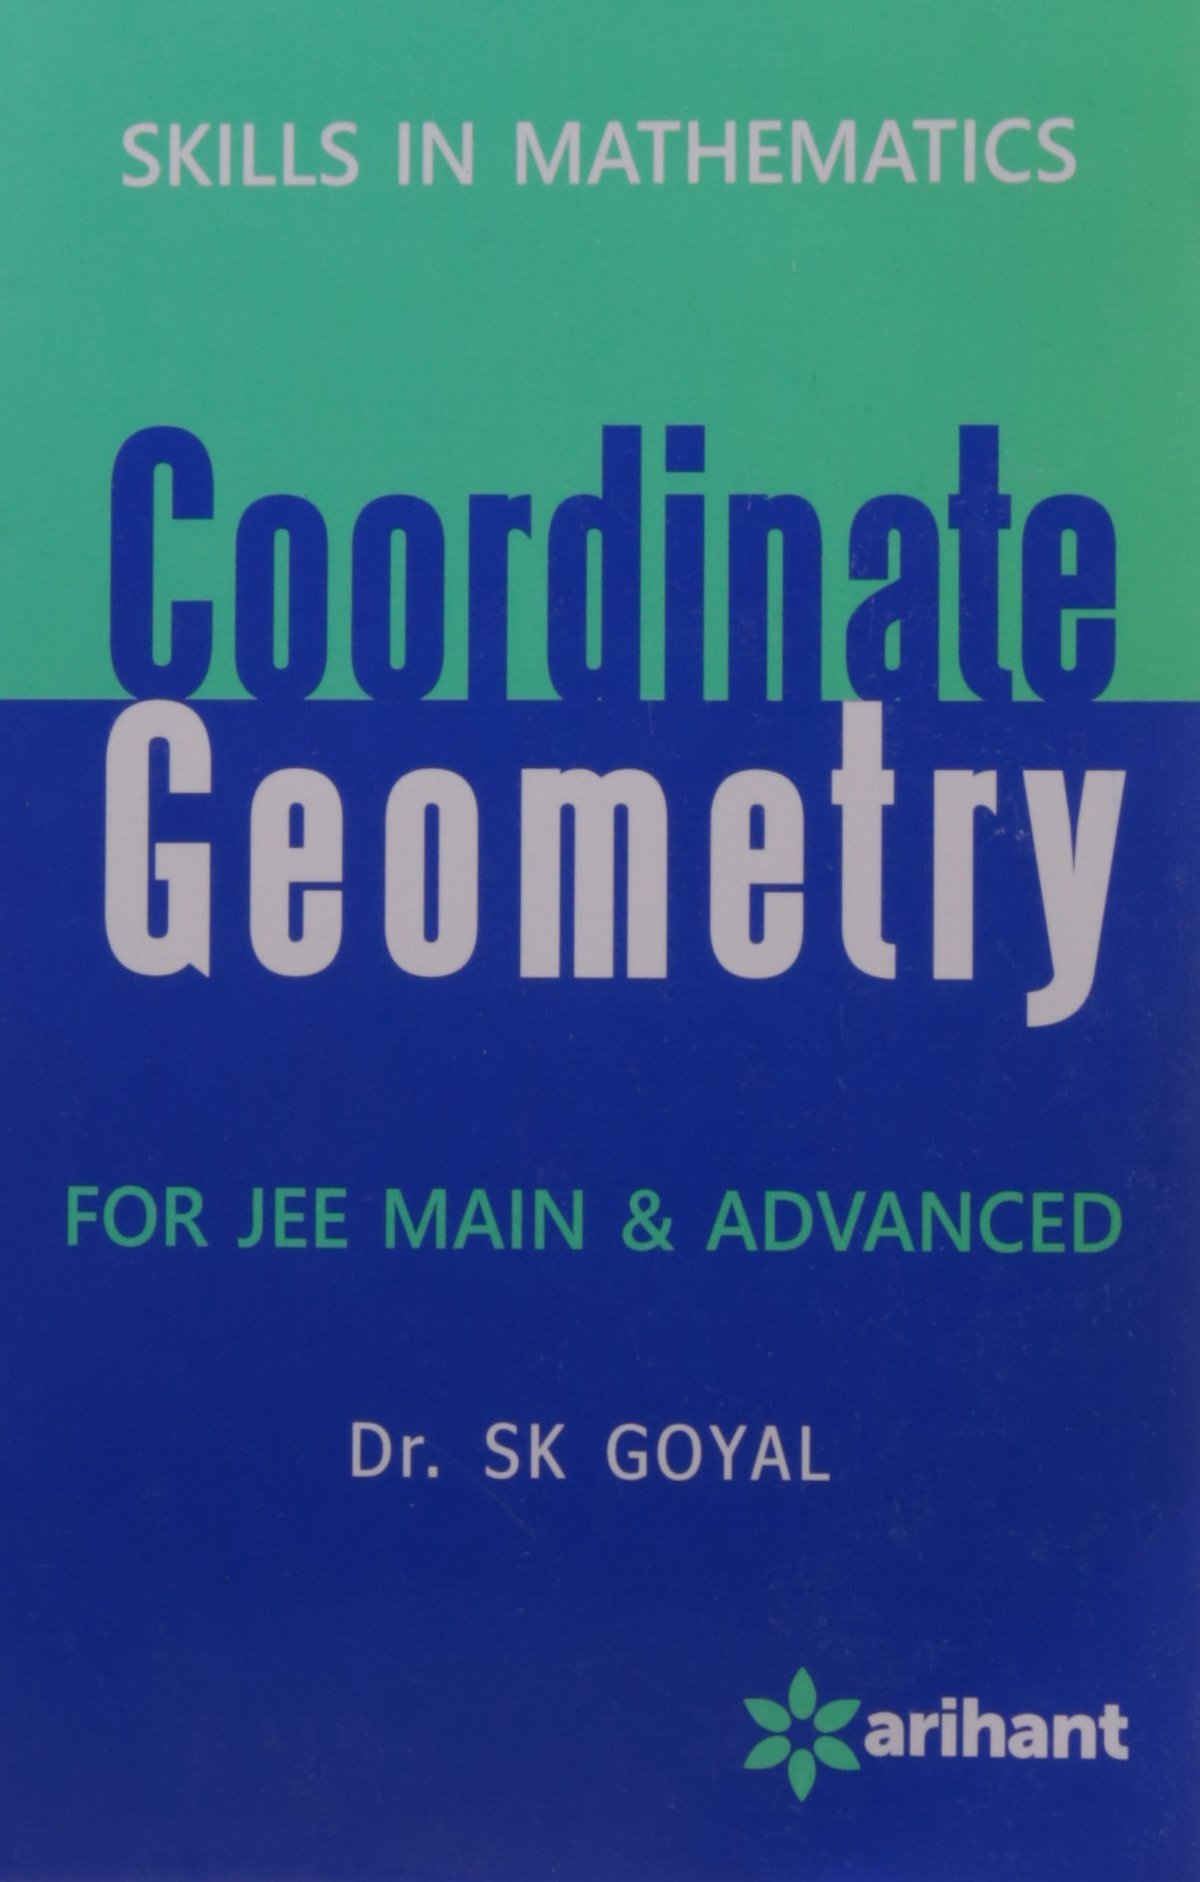 Buy Skills In Mathematics - COORDINATE GEOMETRY for JEE Main ...